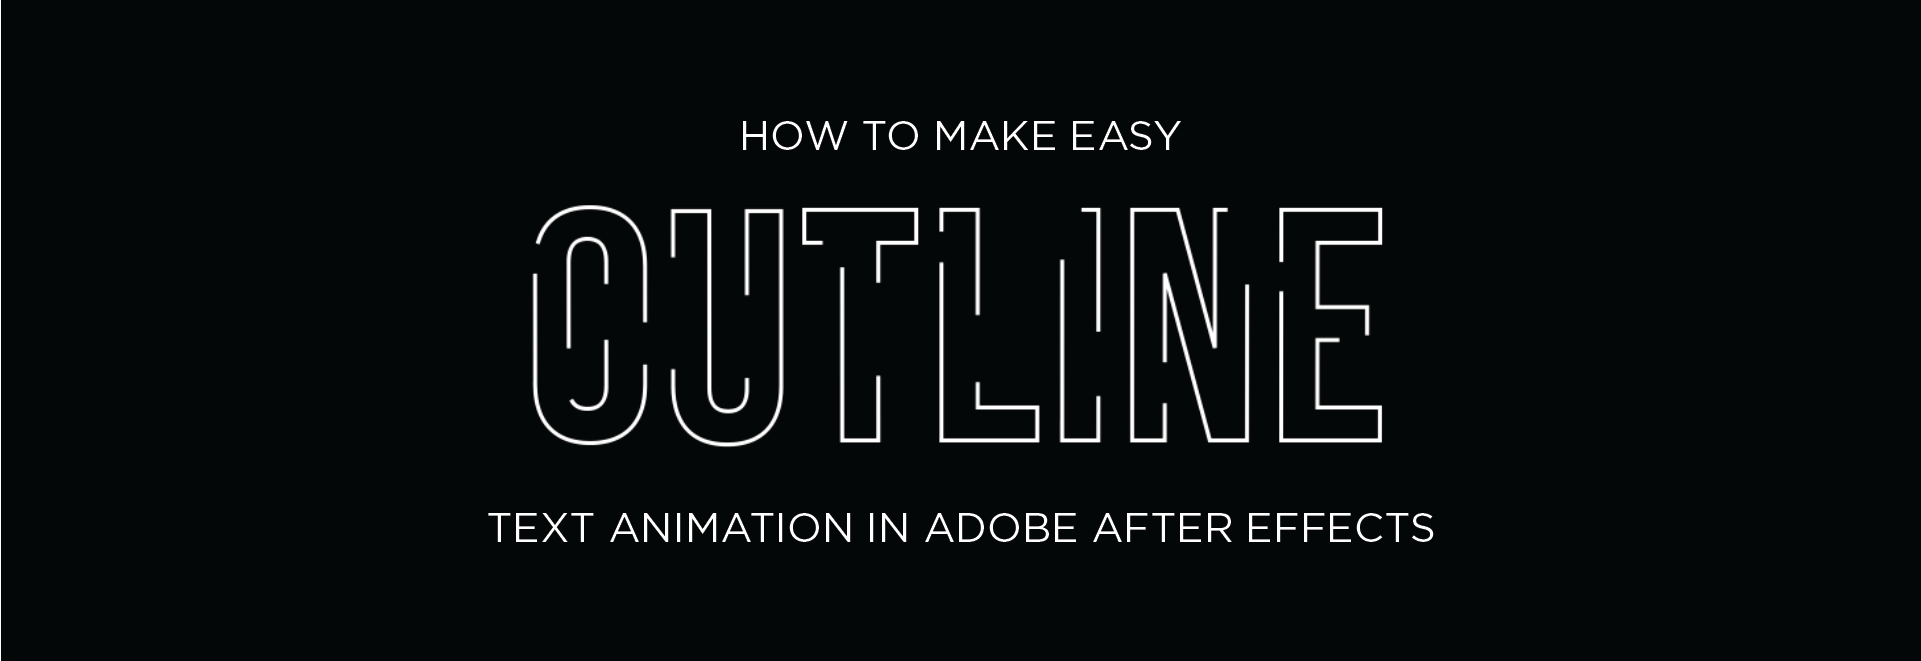 Easy Outline Animation Effect in Adobe After Effects using Trim